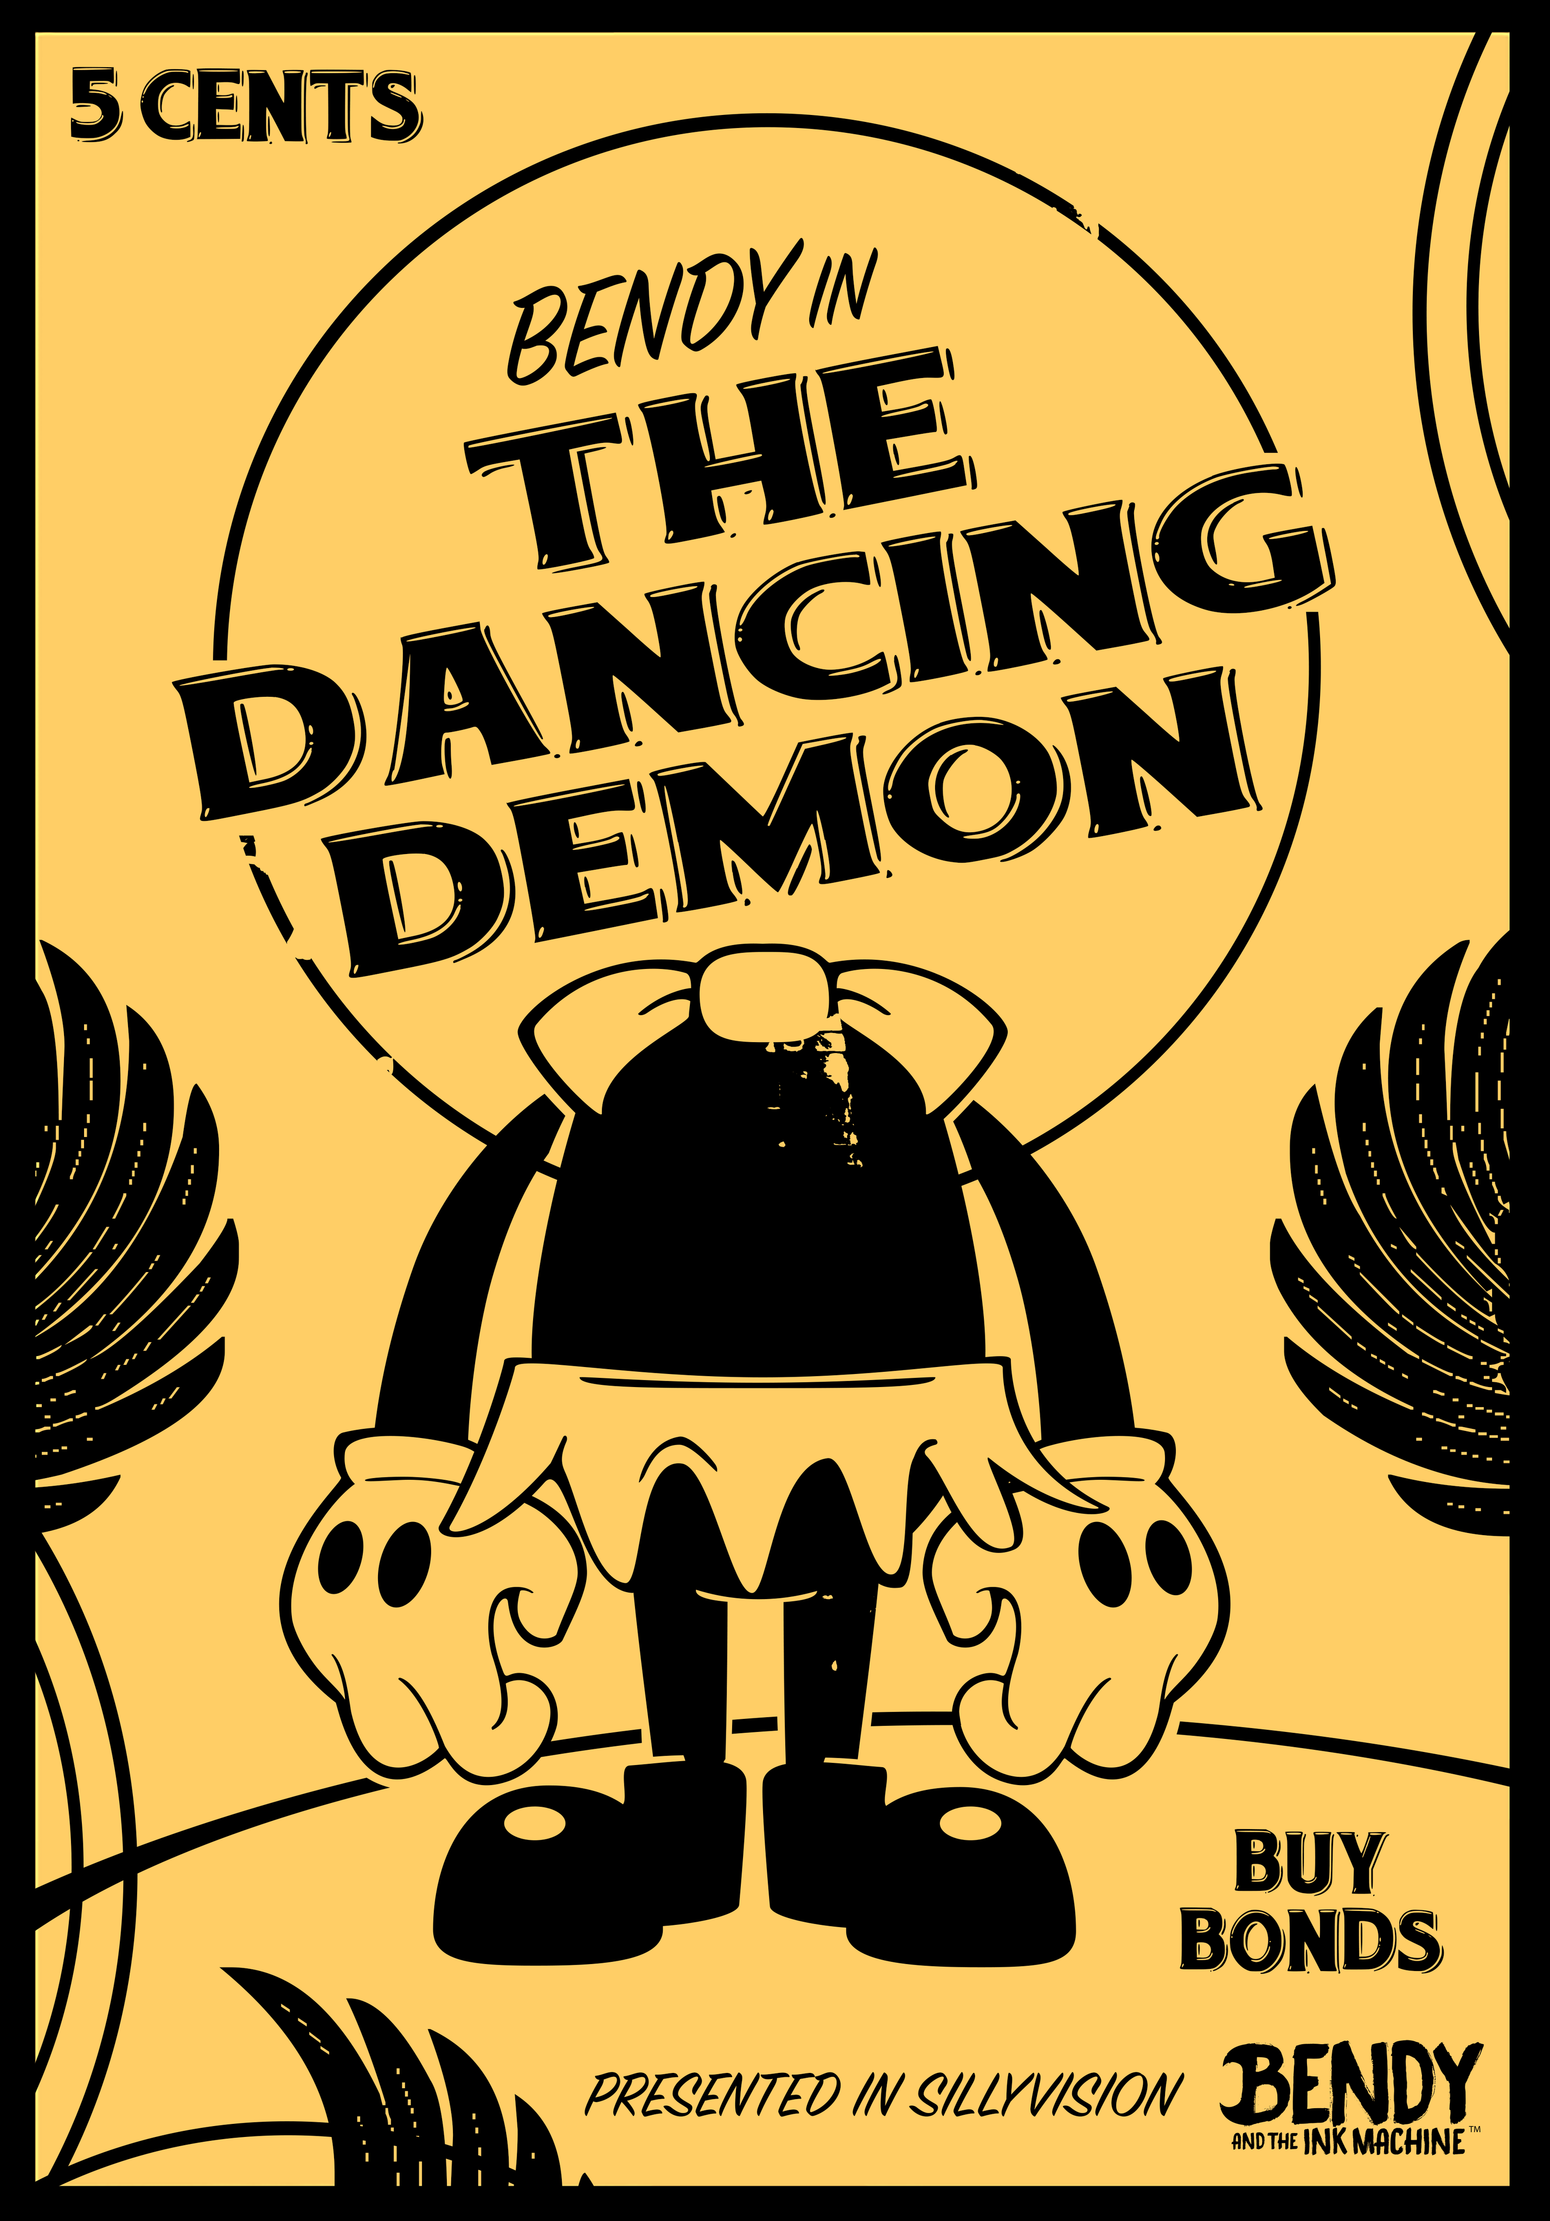 bendy and the ink machine sheep songs poster